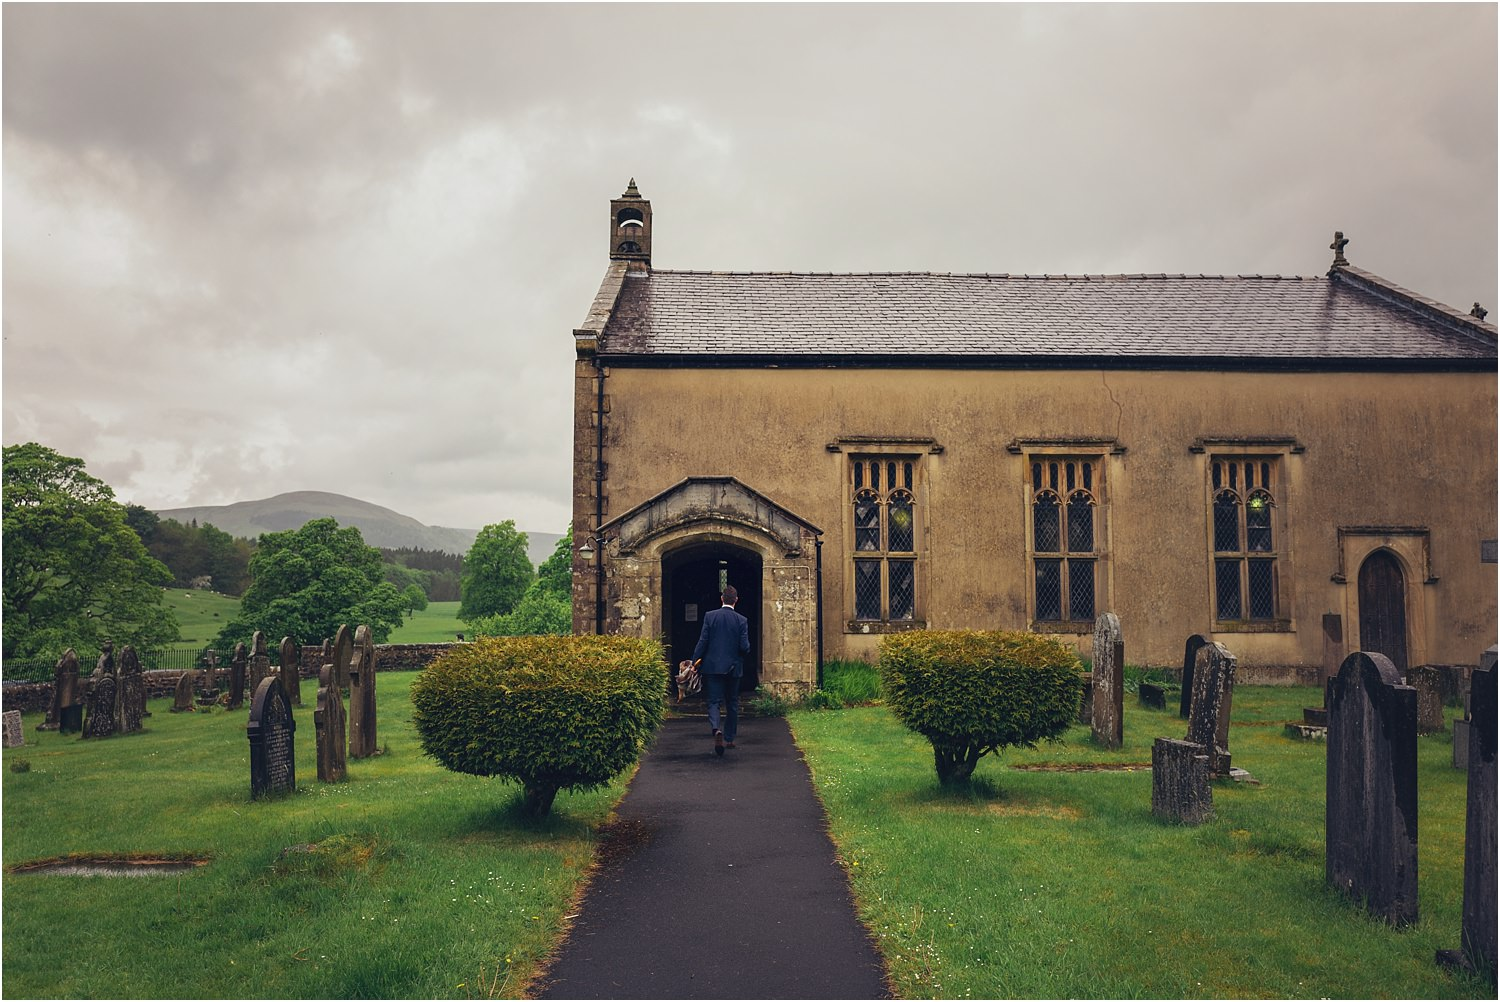 Lone guest walks up path to beautiful rural Lancashire church